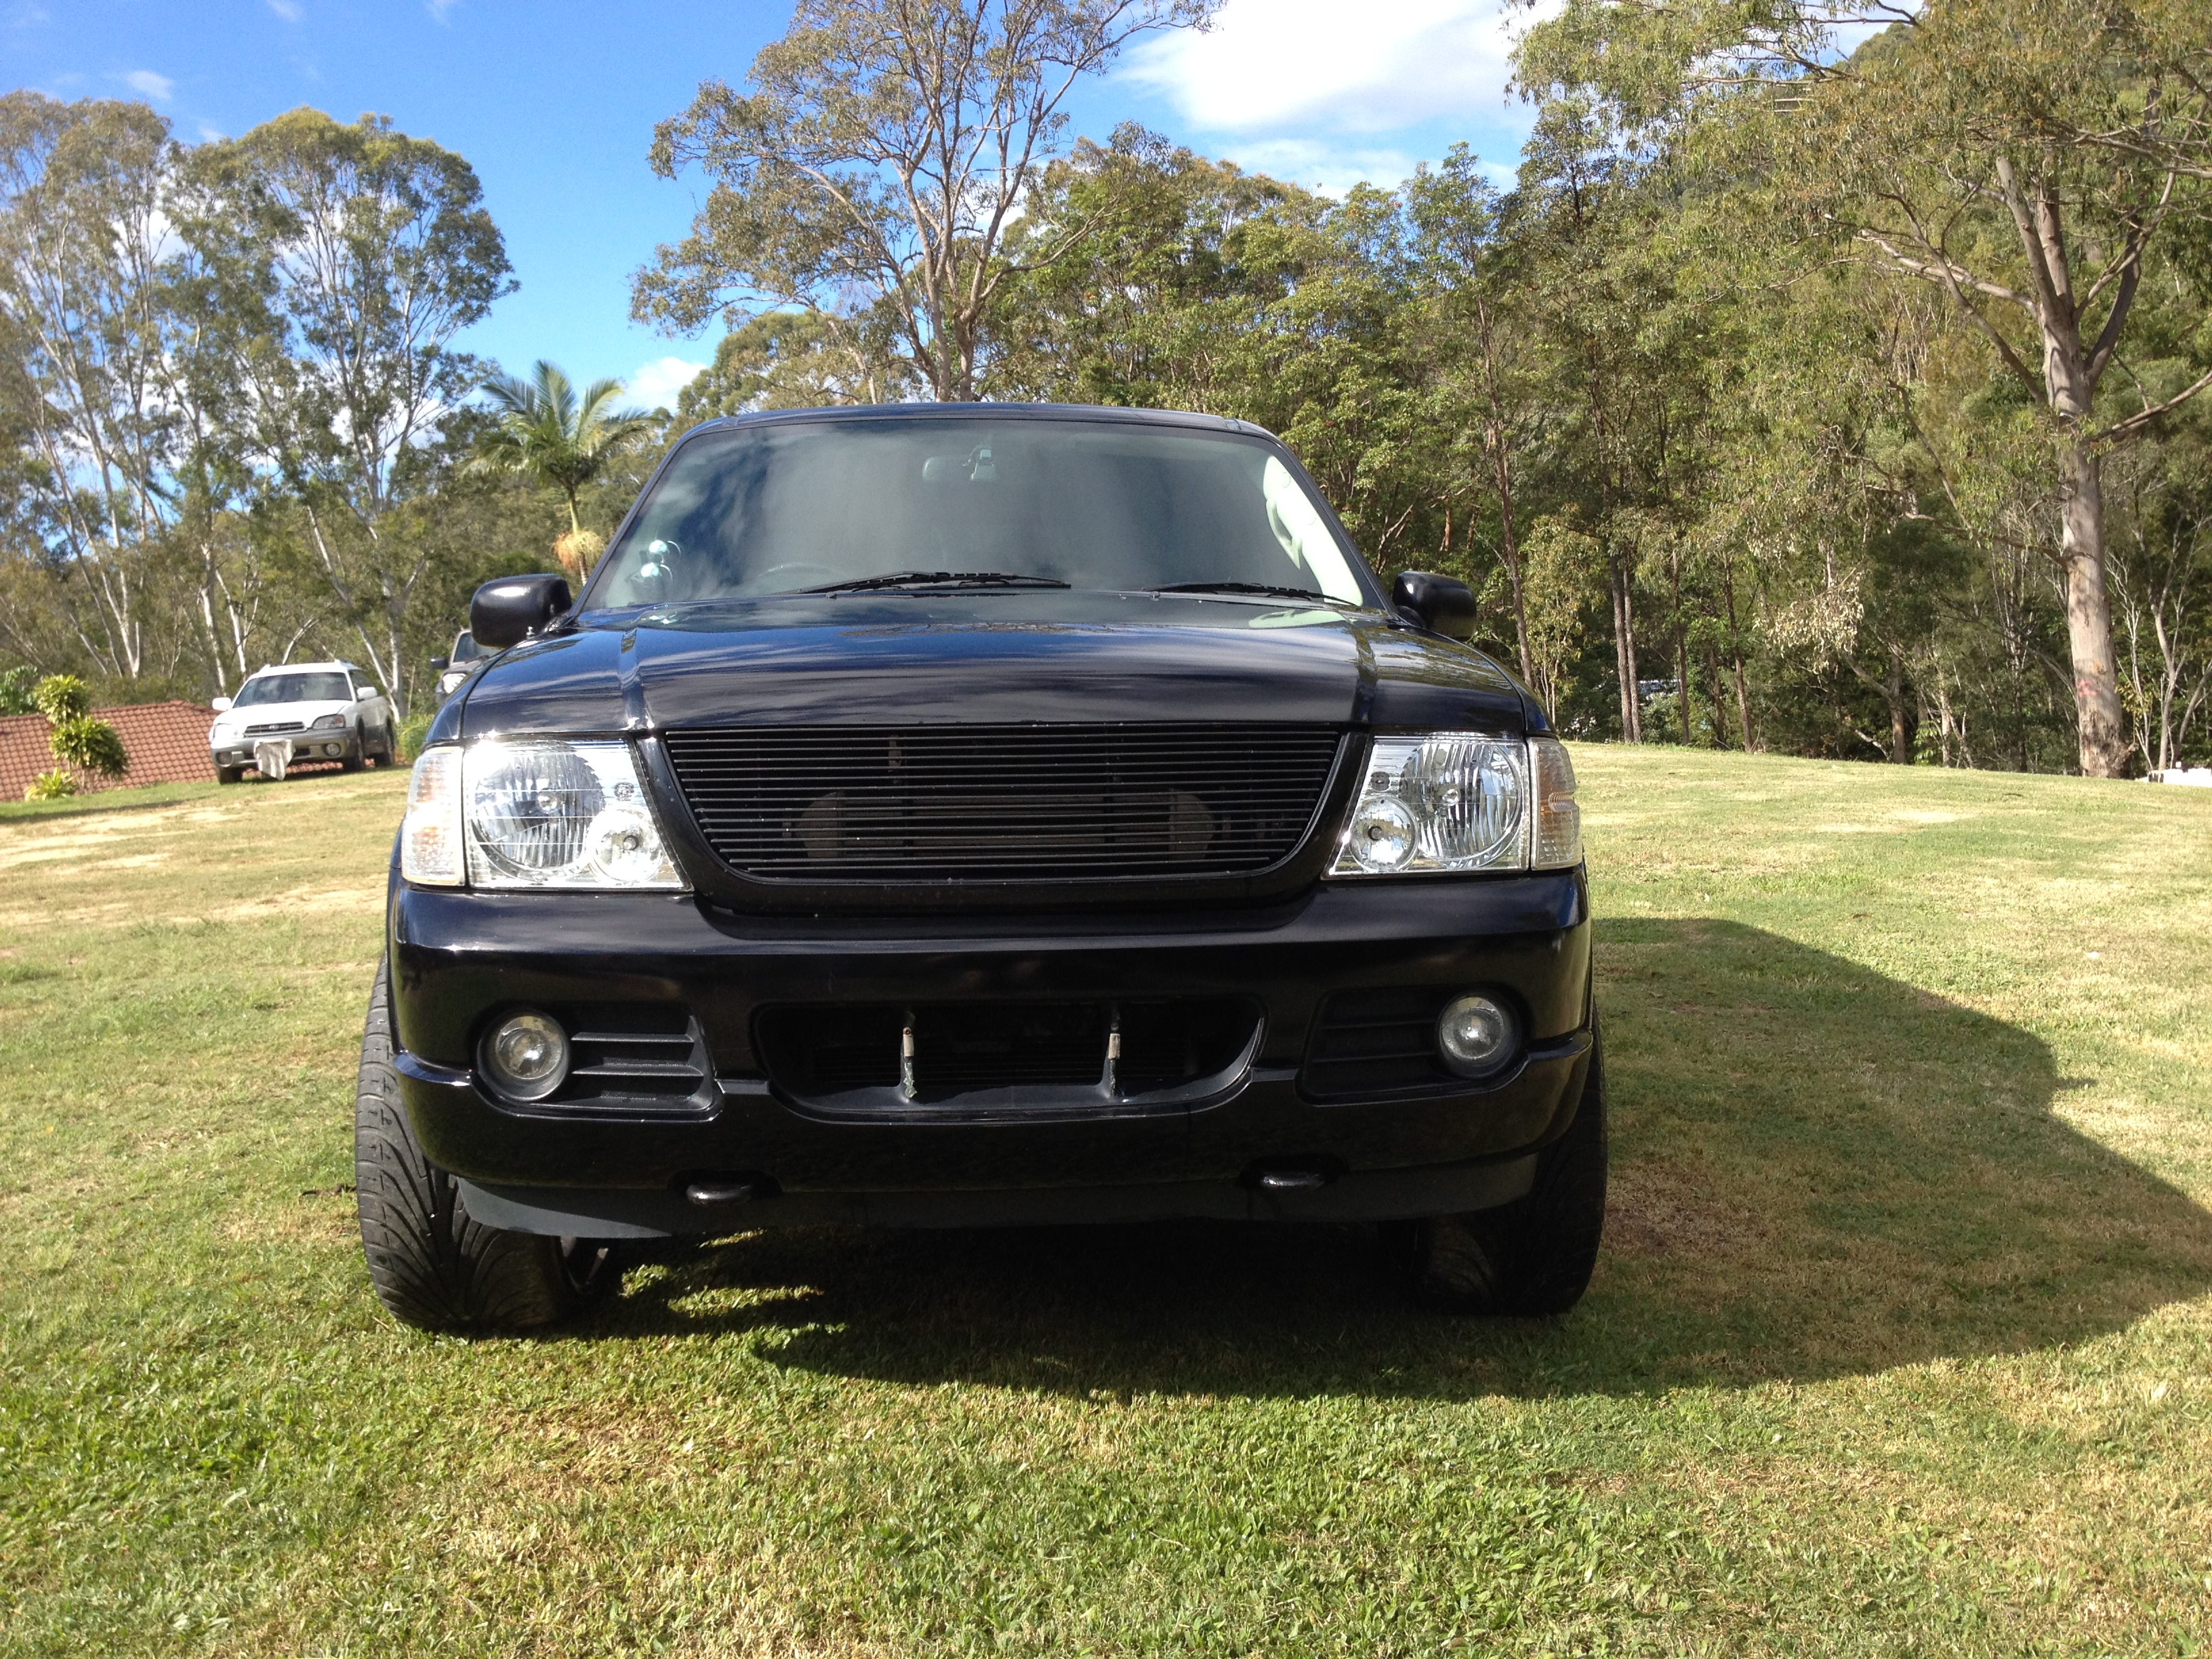 2005 ford explorer limited 4x4 uz for sale or swap qld gold coast. Black Bedroom Furniture Sets. Home Design Ideas